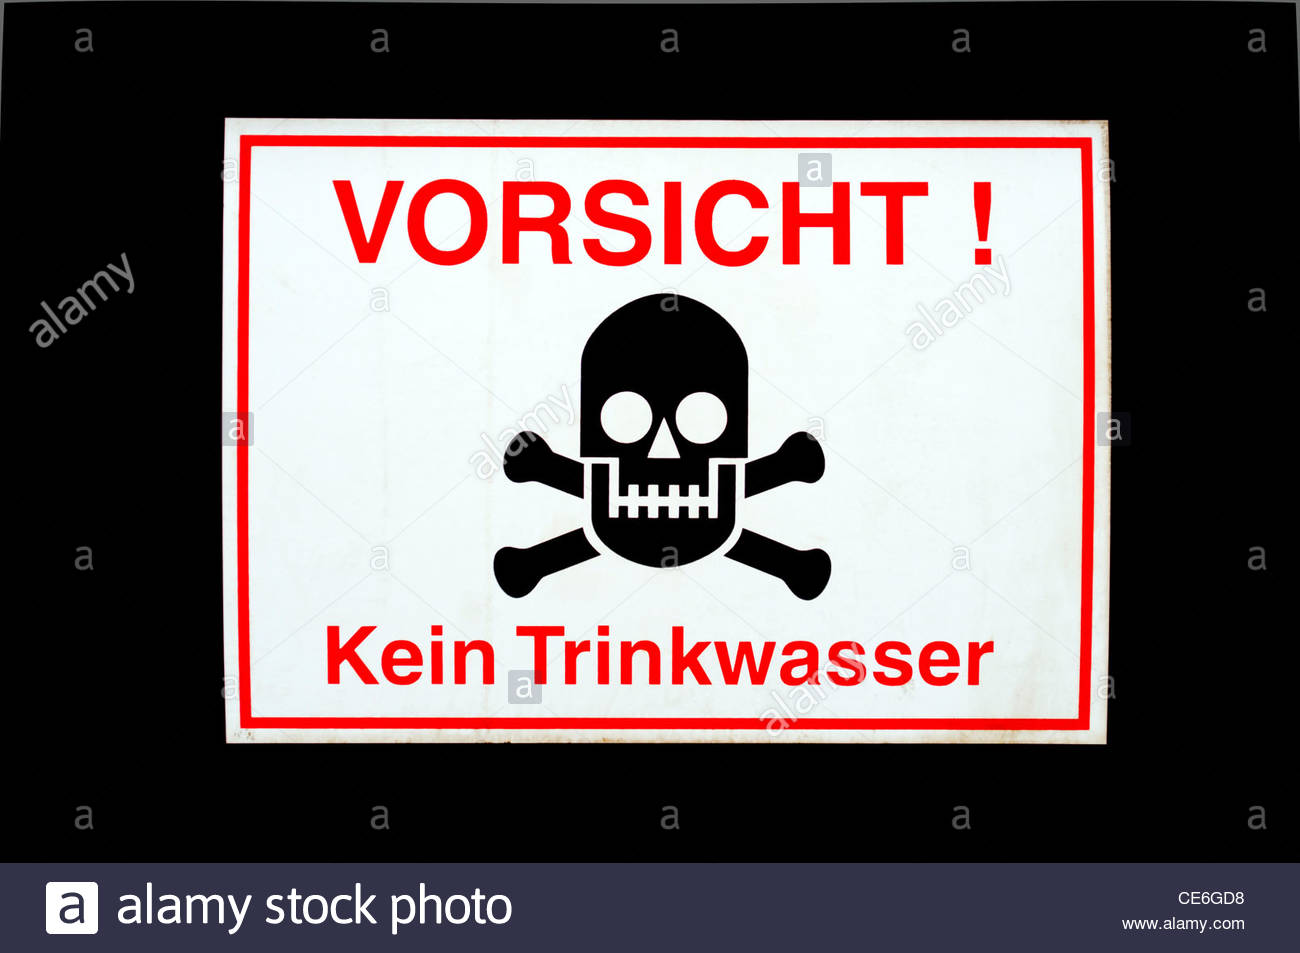 Sign warning 'Vorsicht! Kein Trinkwasser' (Caution! Not Drinking Water), Leipzig, Saxony, Germany - Stock Image